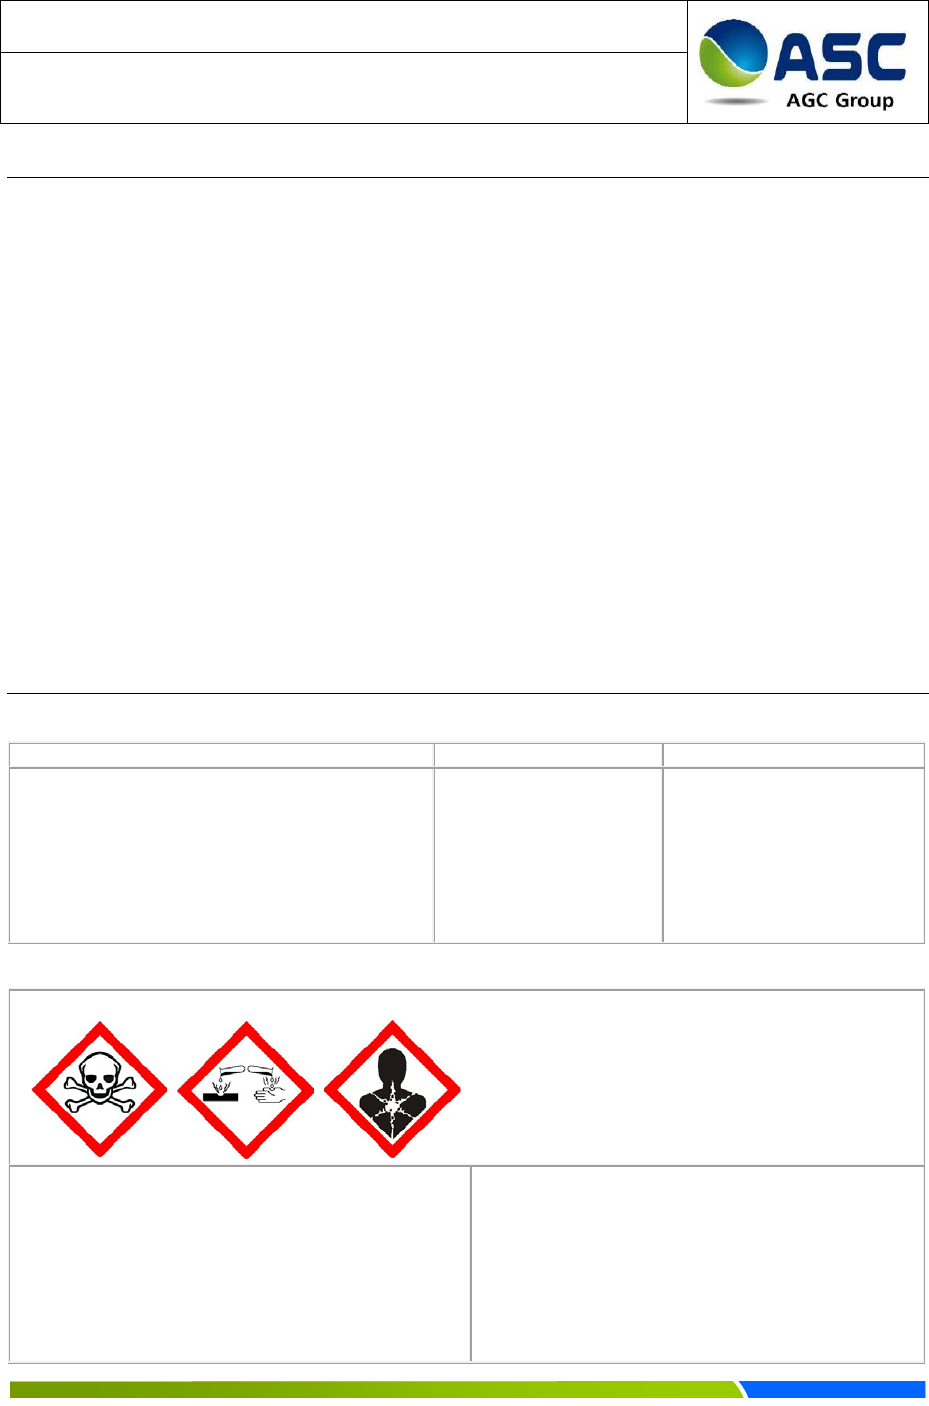 07 Zmsds Cl2 Asc R4 Asahimas Chemical Zmsds Cl2 Asc R4 Pdf Material Safety Data Sheet Chlorine Gas May Cause Damage To Cardiovascular Respiratory Nervous And Gastrointestinal